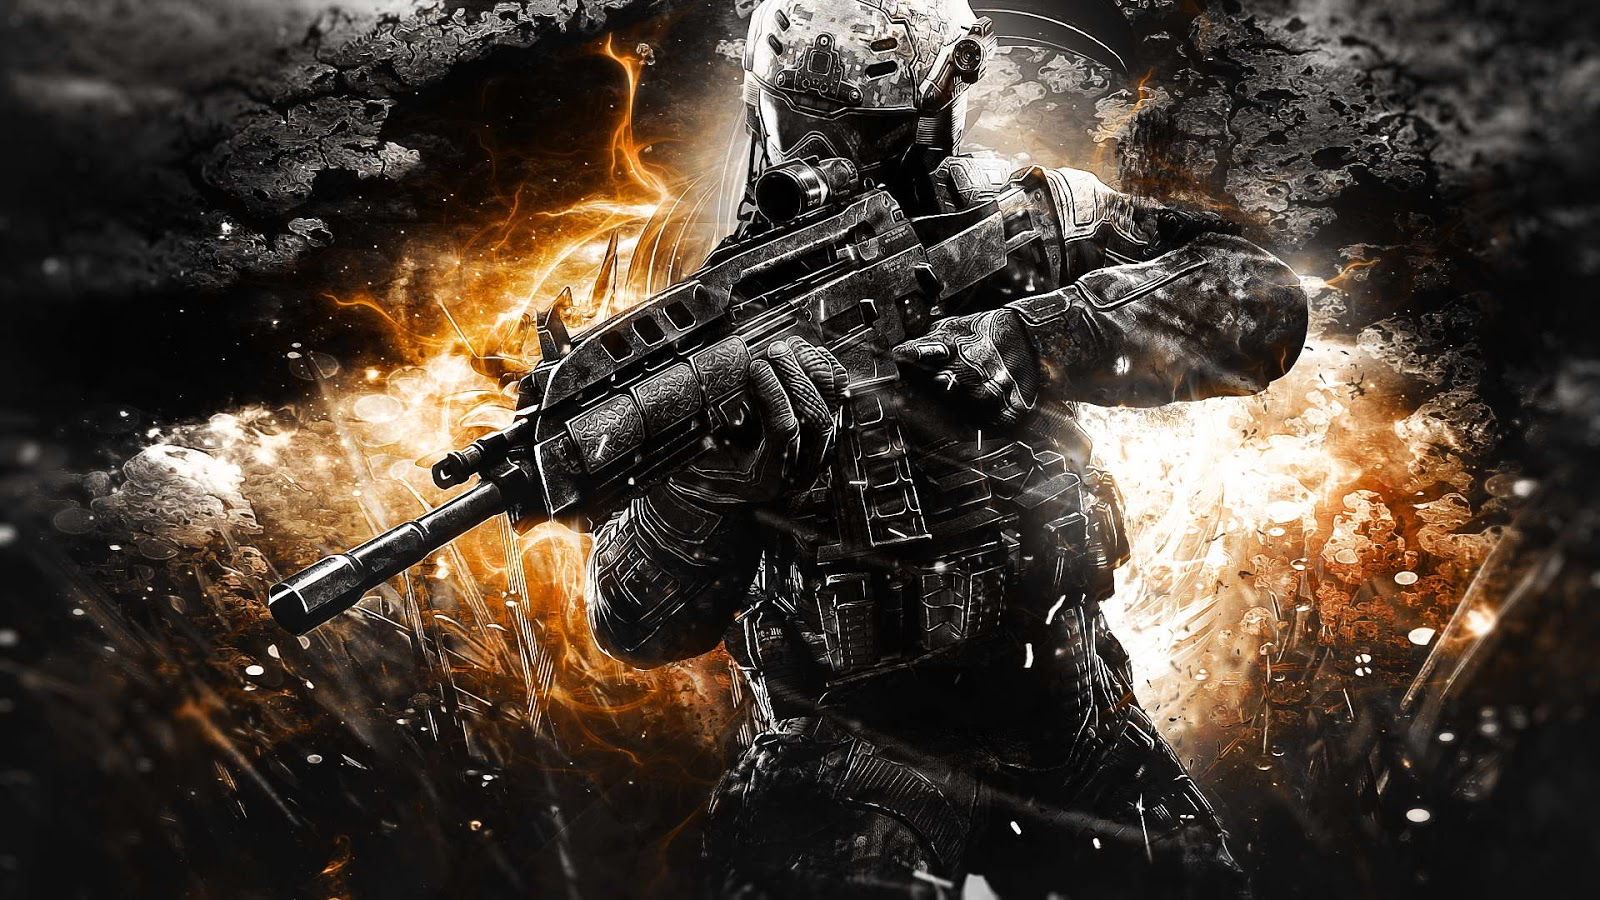 Call Of Duty Zombies Wallpapercod Black Ops Zombies 1600x900